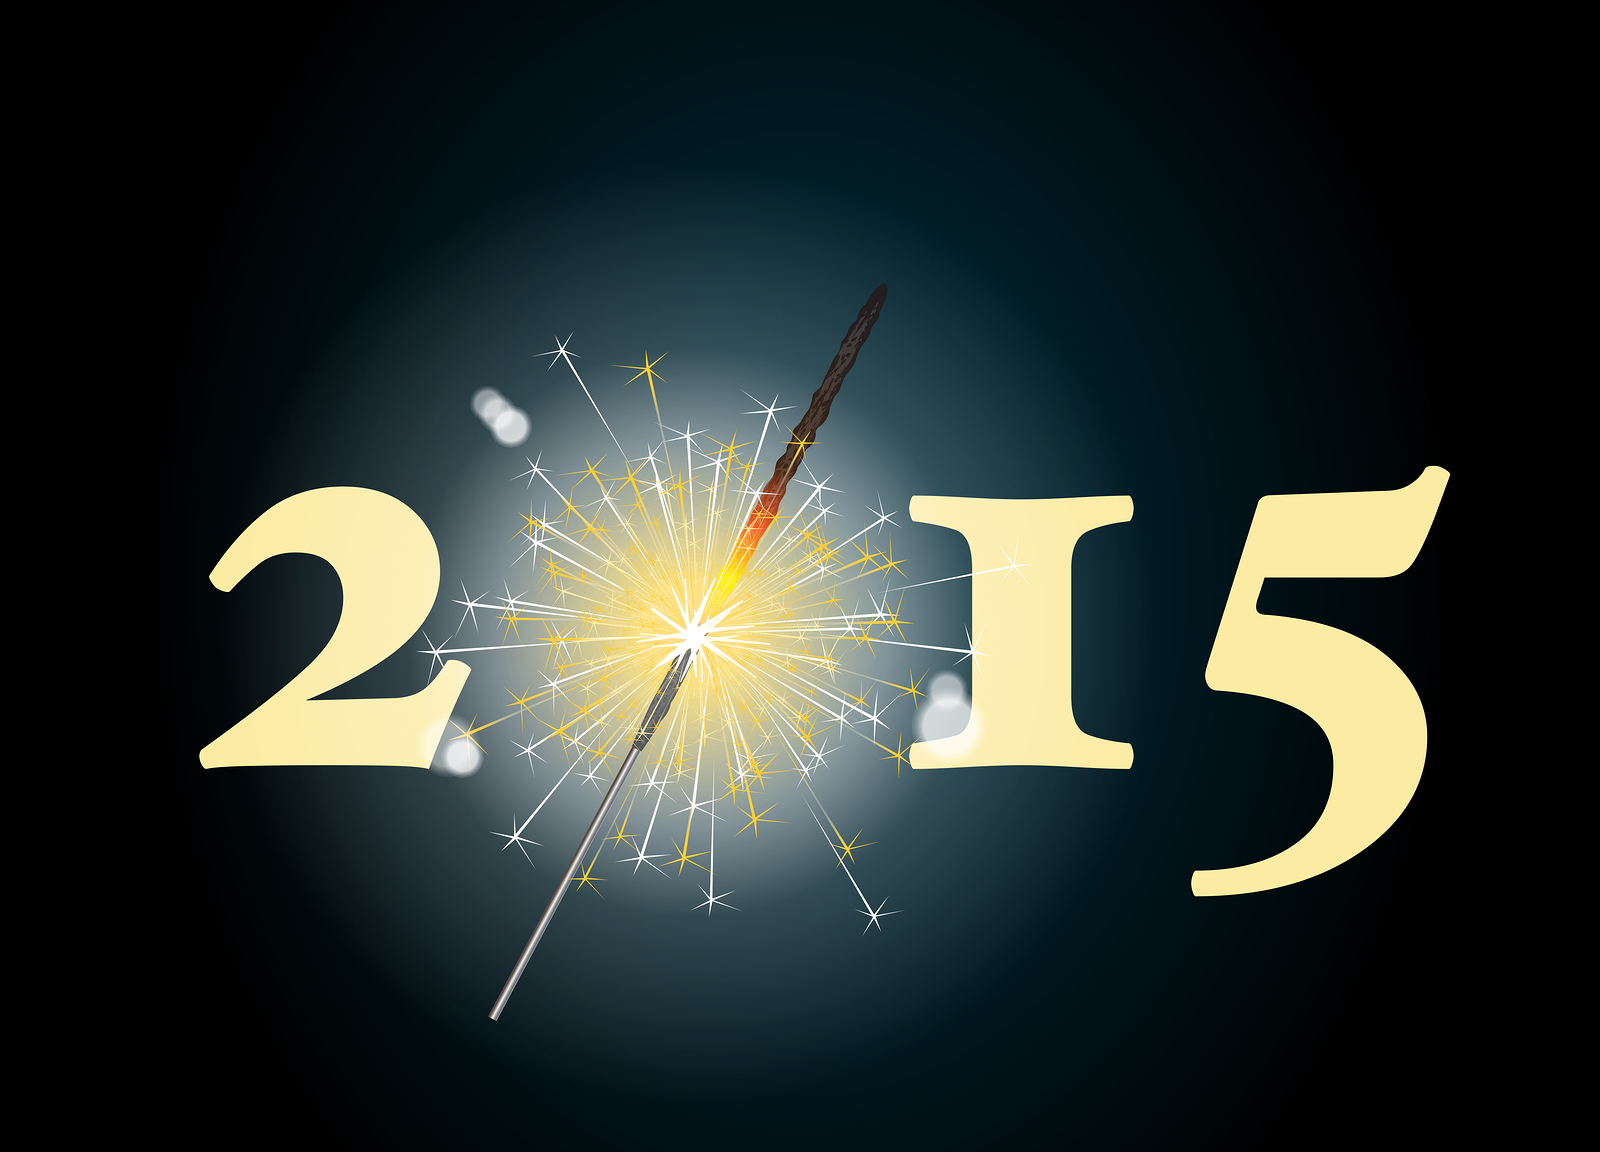 2015 banner with the zero being depicted by a glowing sparkler.